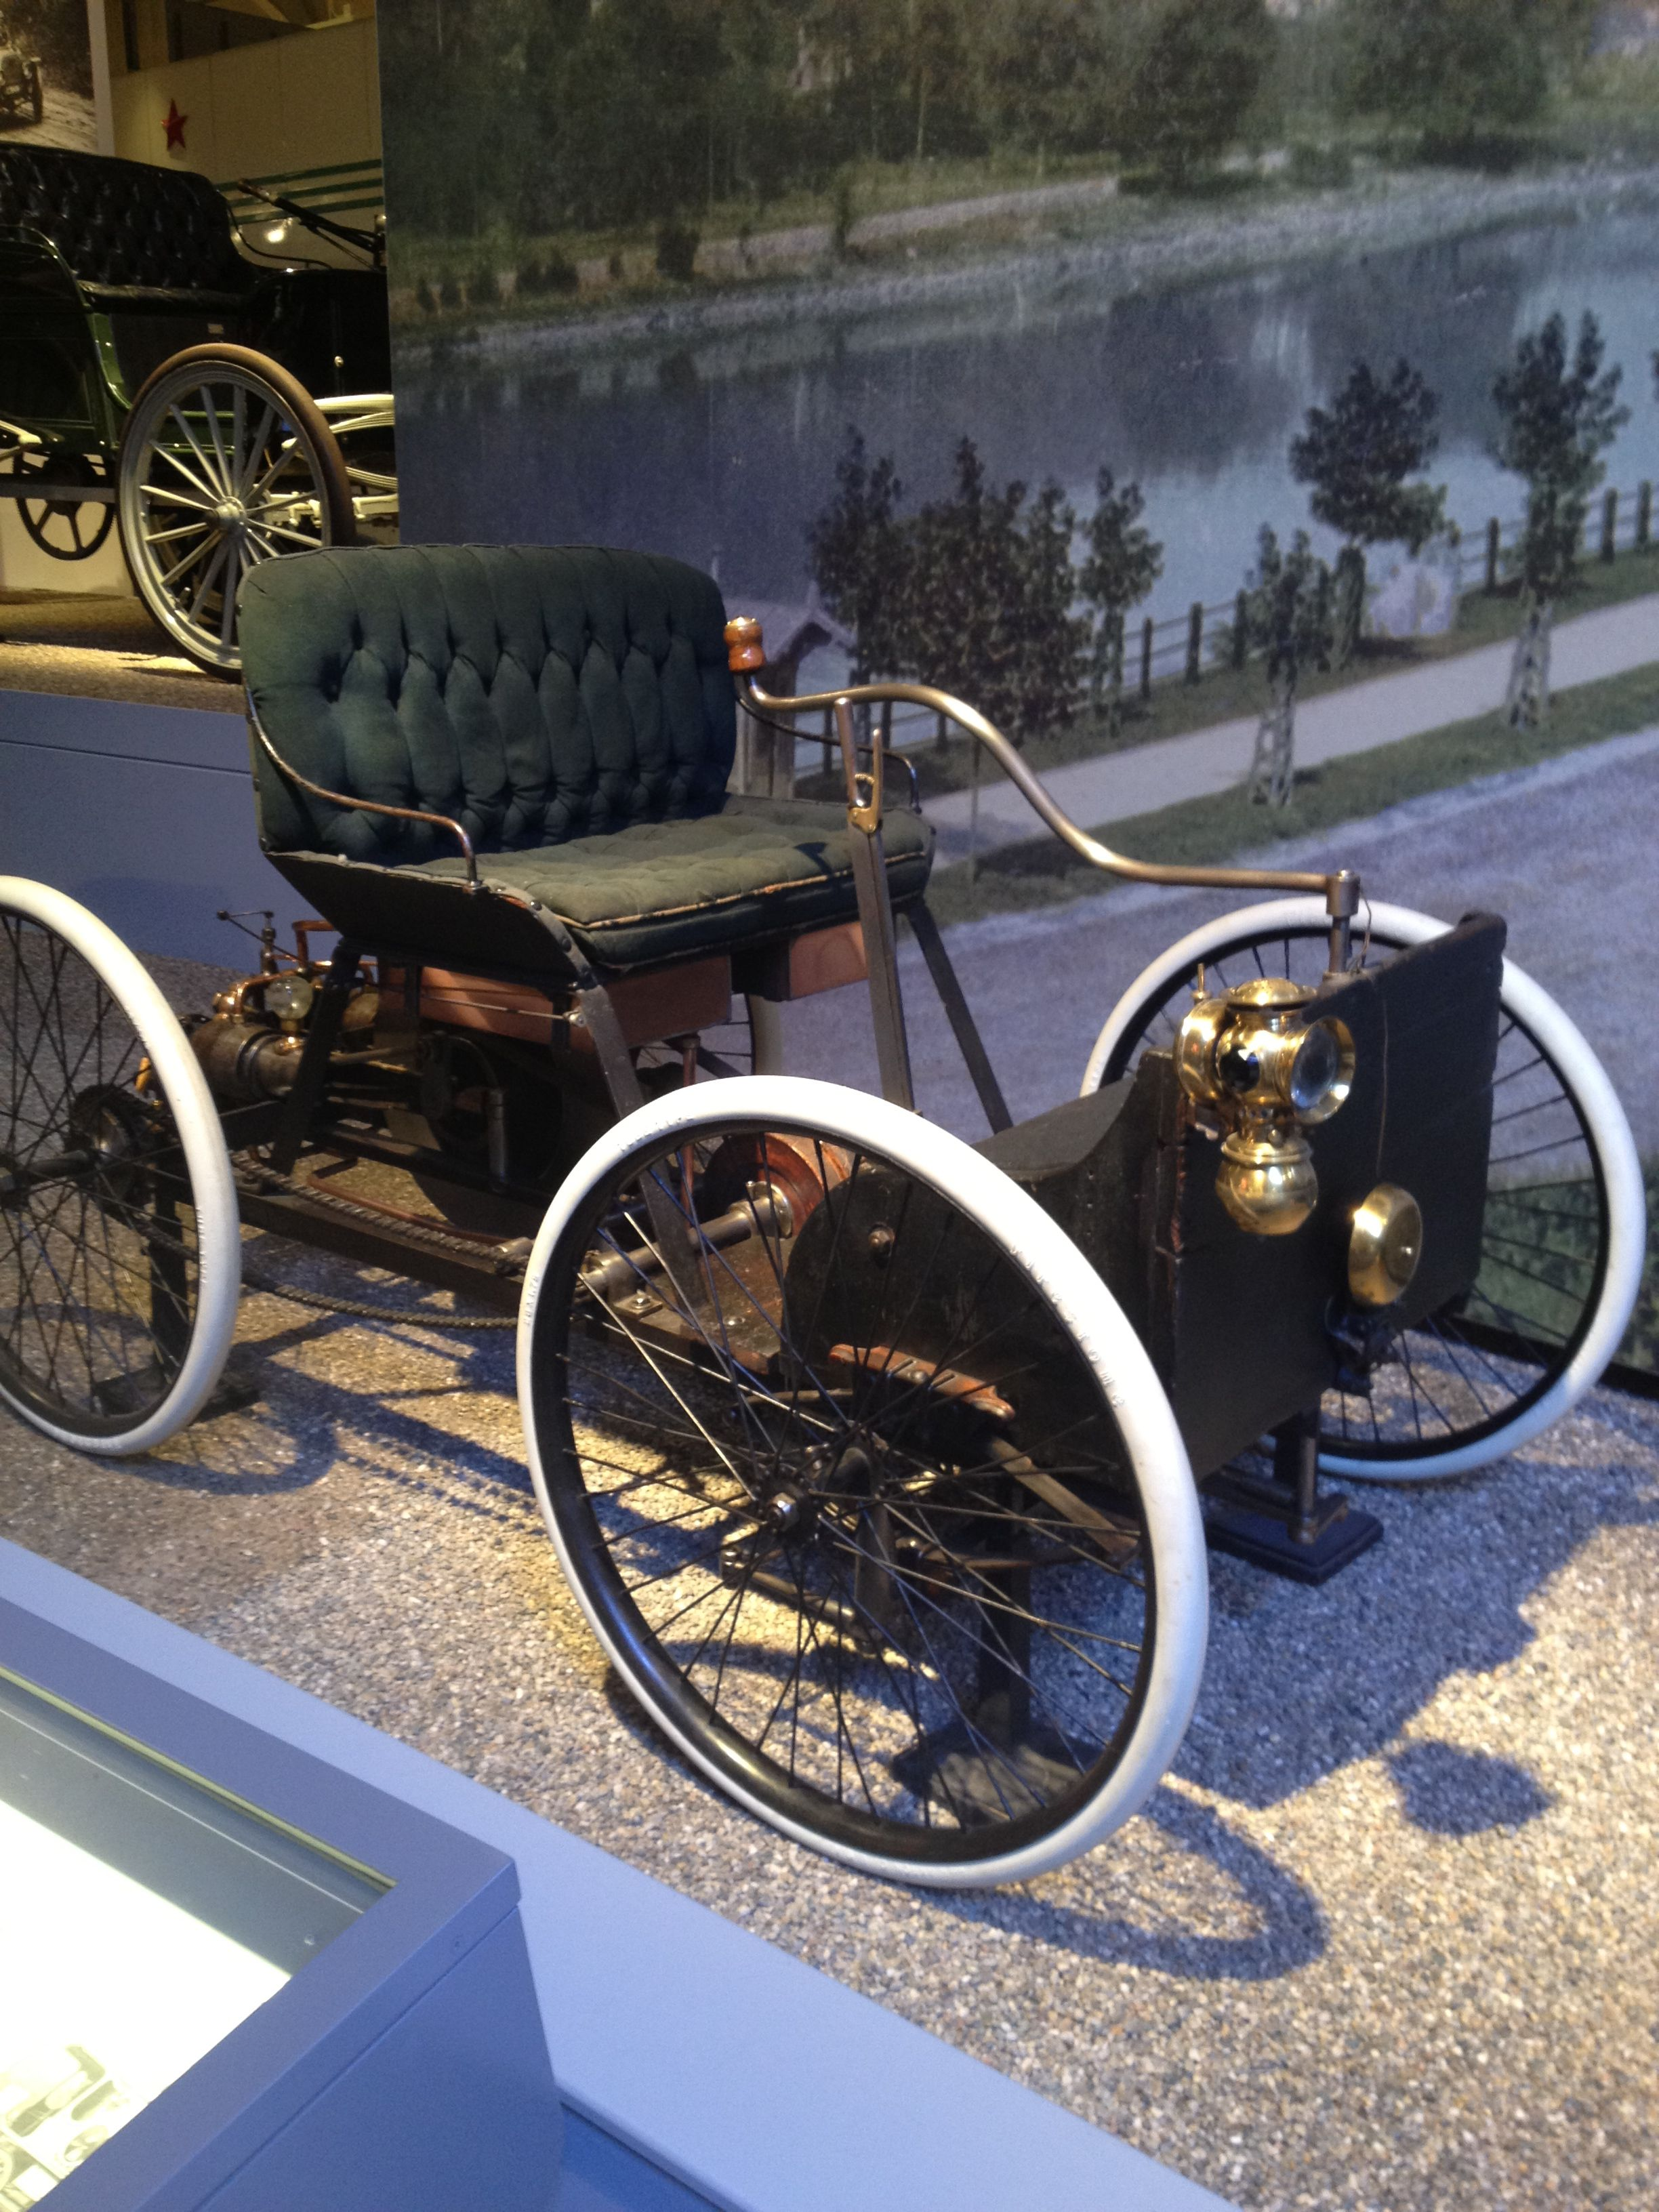 1896 Ford Quadricycle Henry Ford Museum Antique Cars Vintage Cars